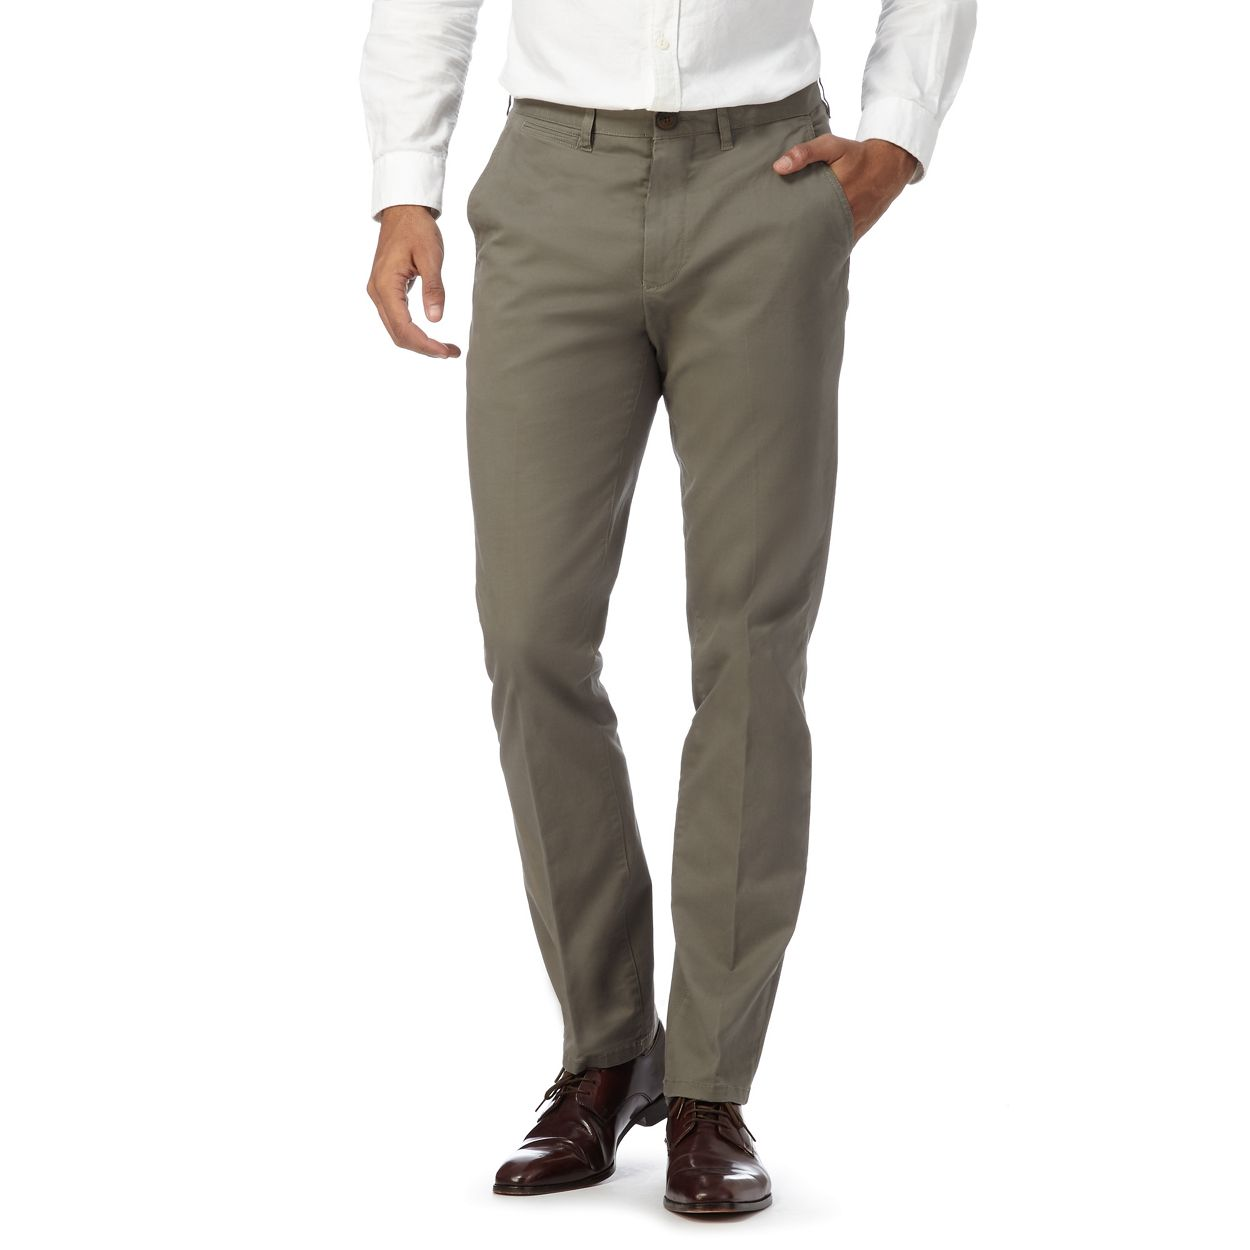 Hammond & Co. by Patrick Grant Grey twill chinos